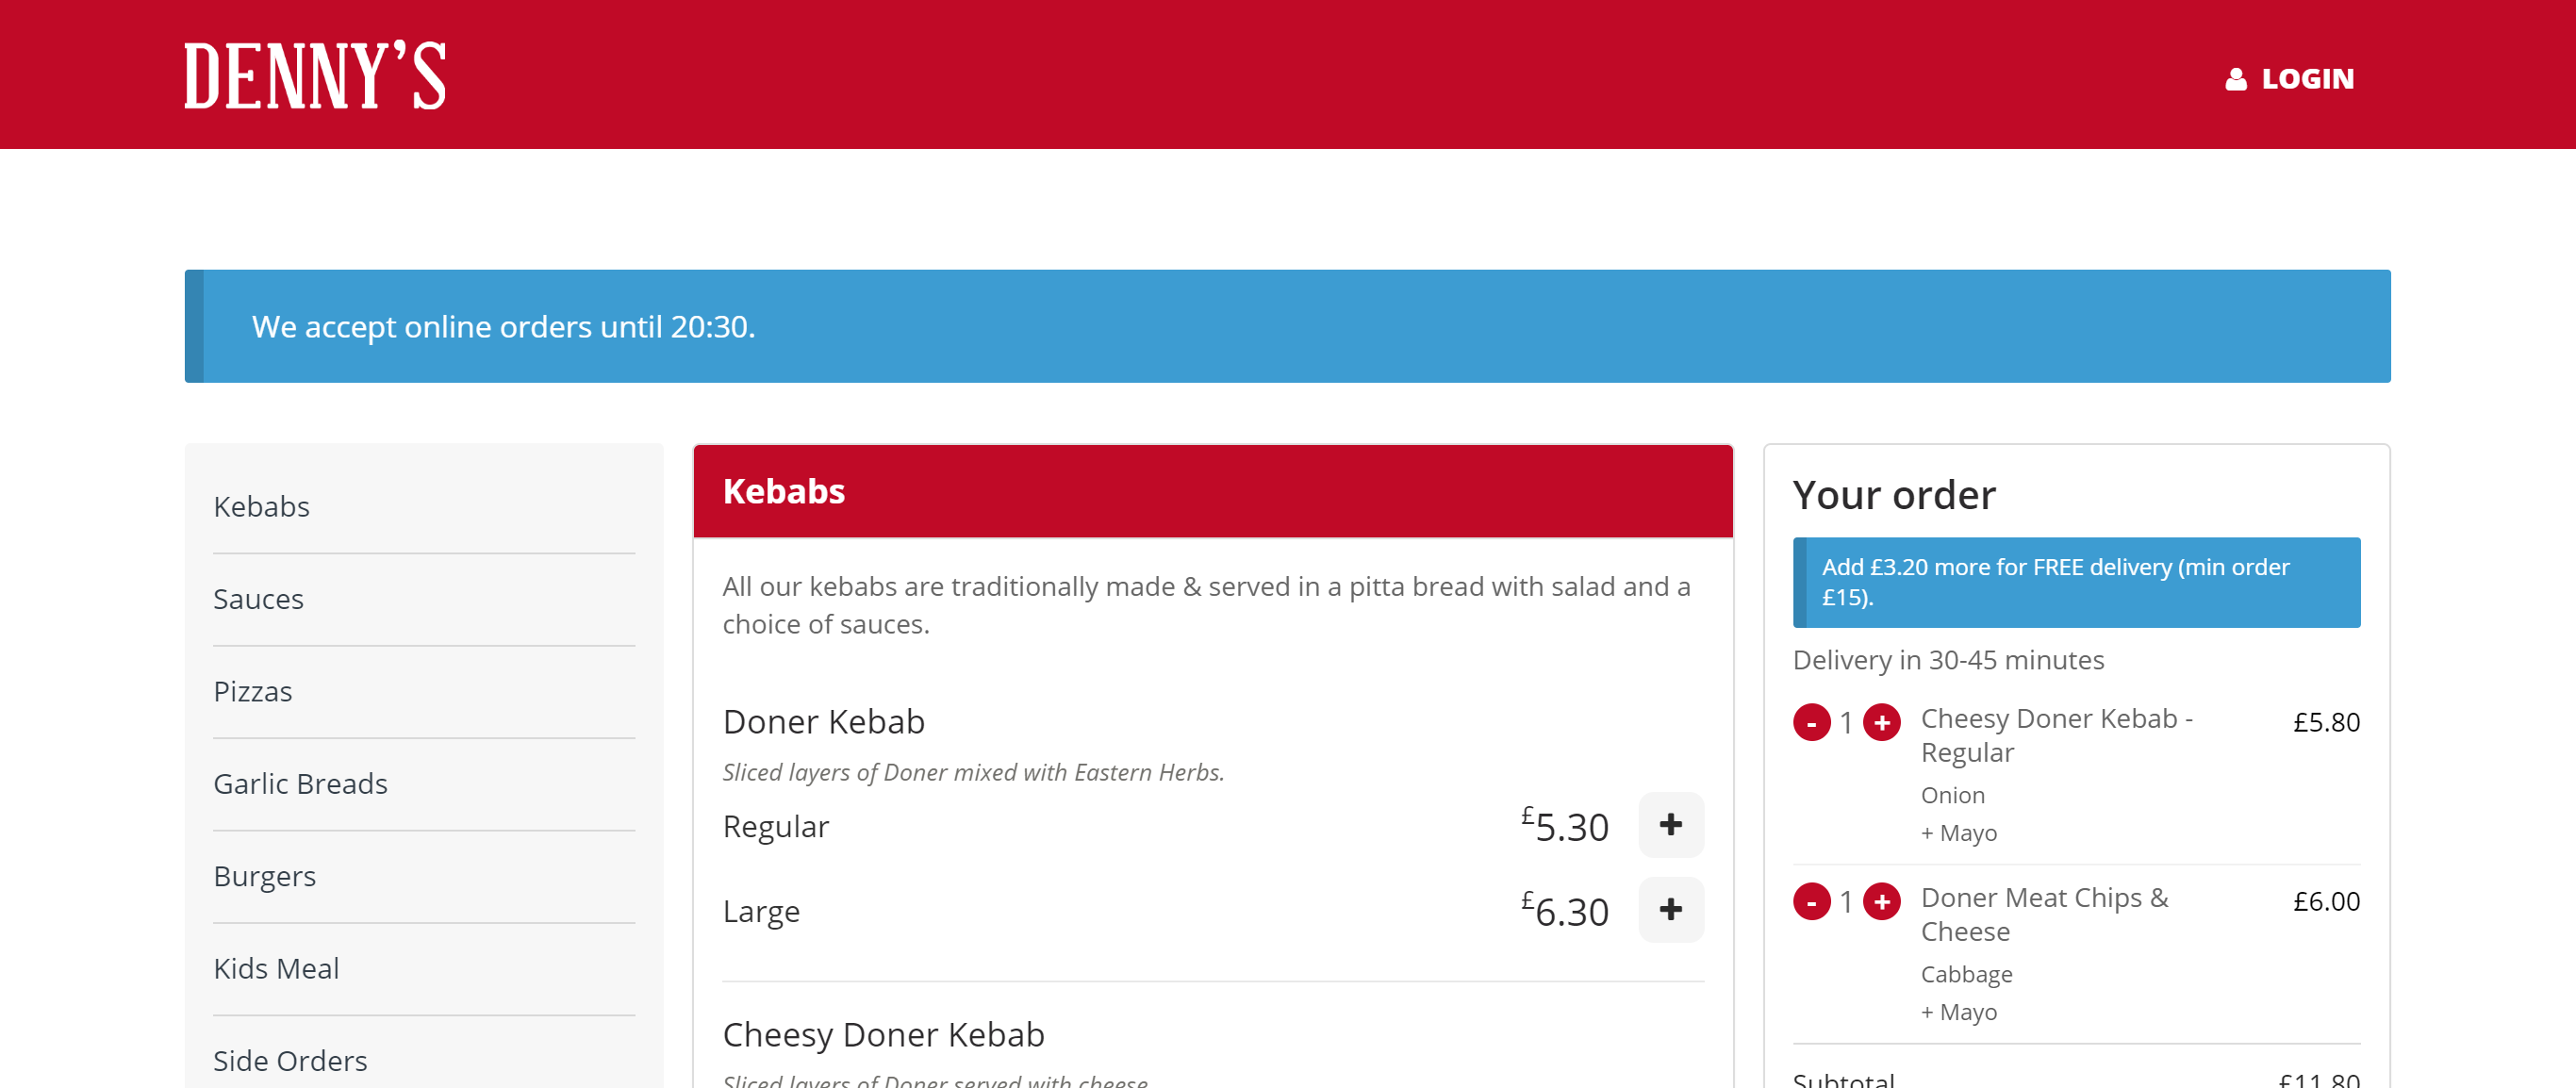 Denny's Pizza and Kebabs menu page screenshot